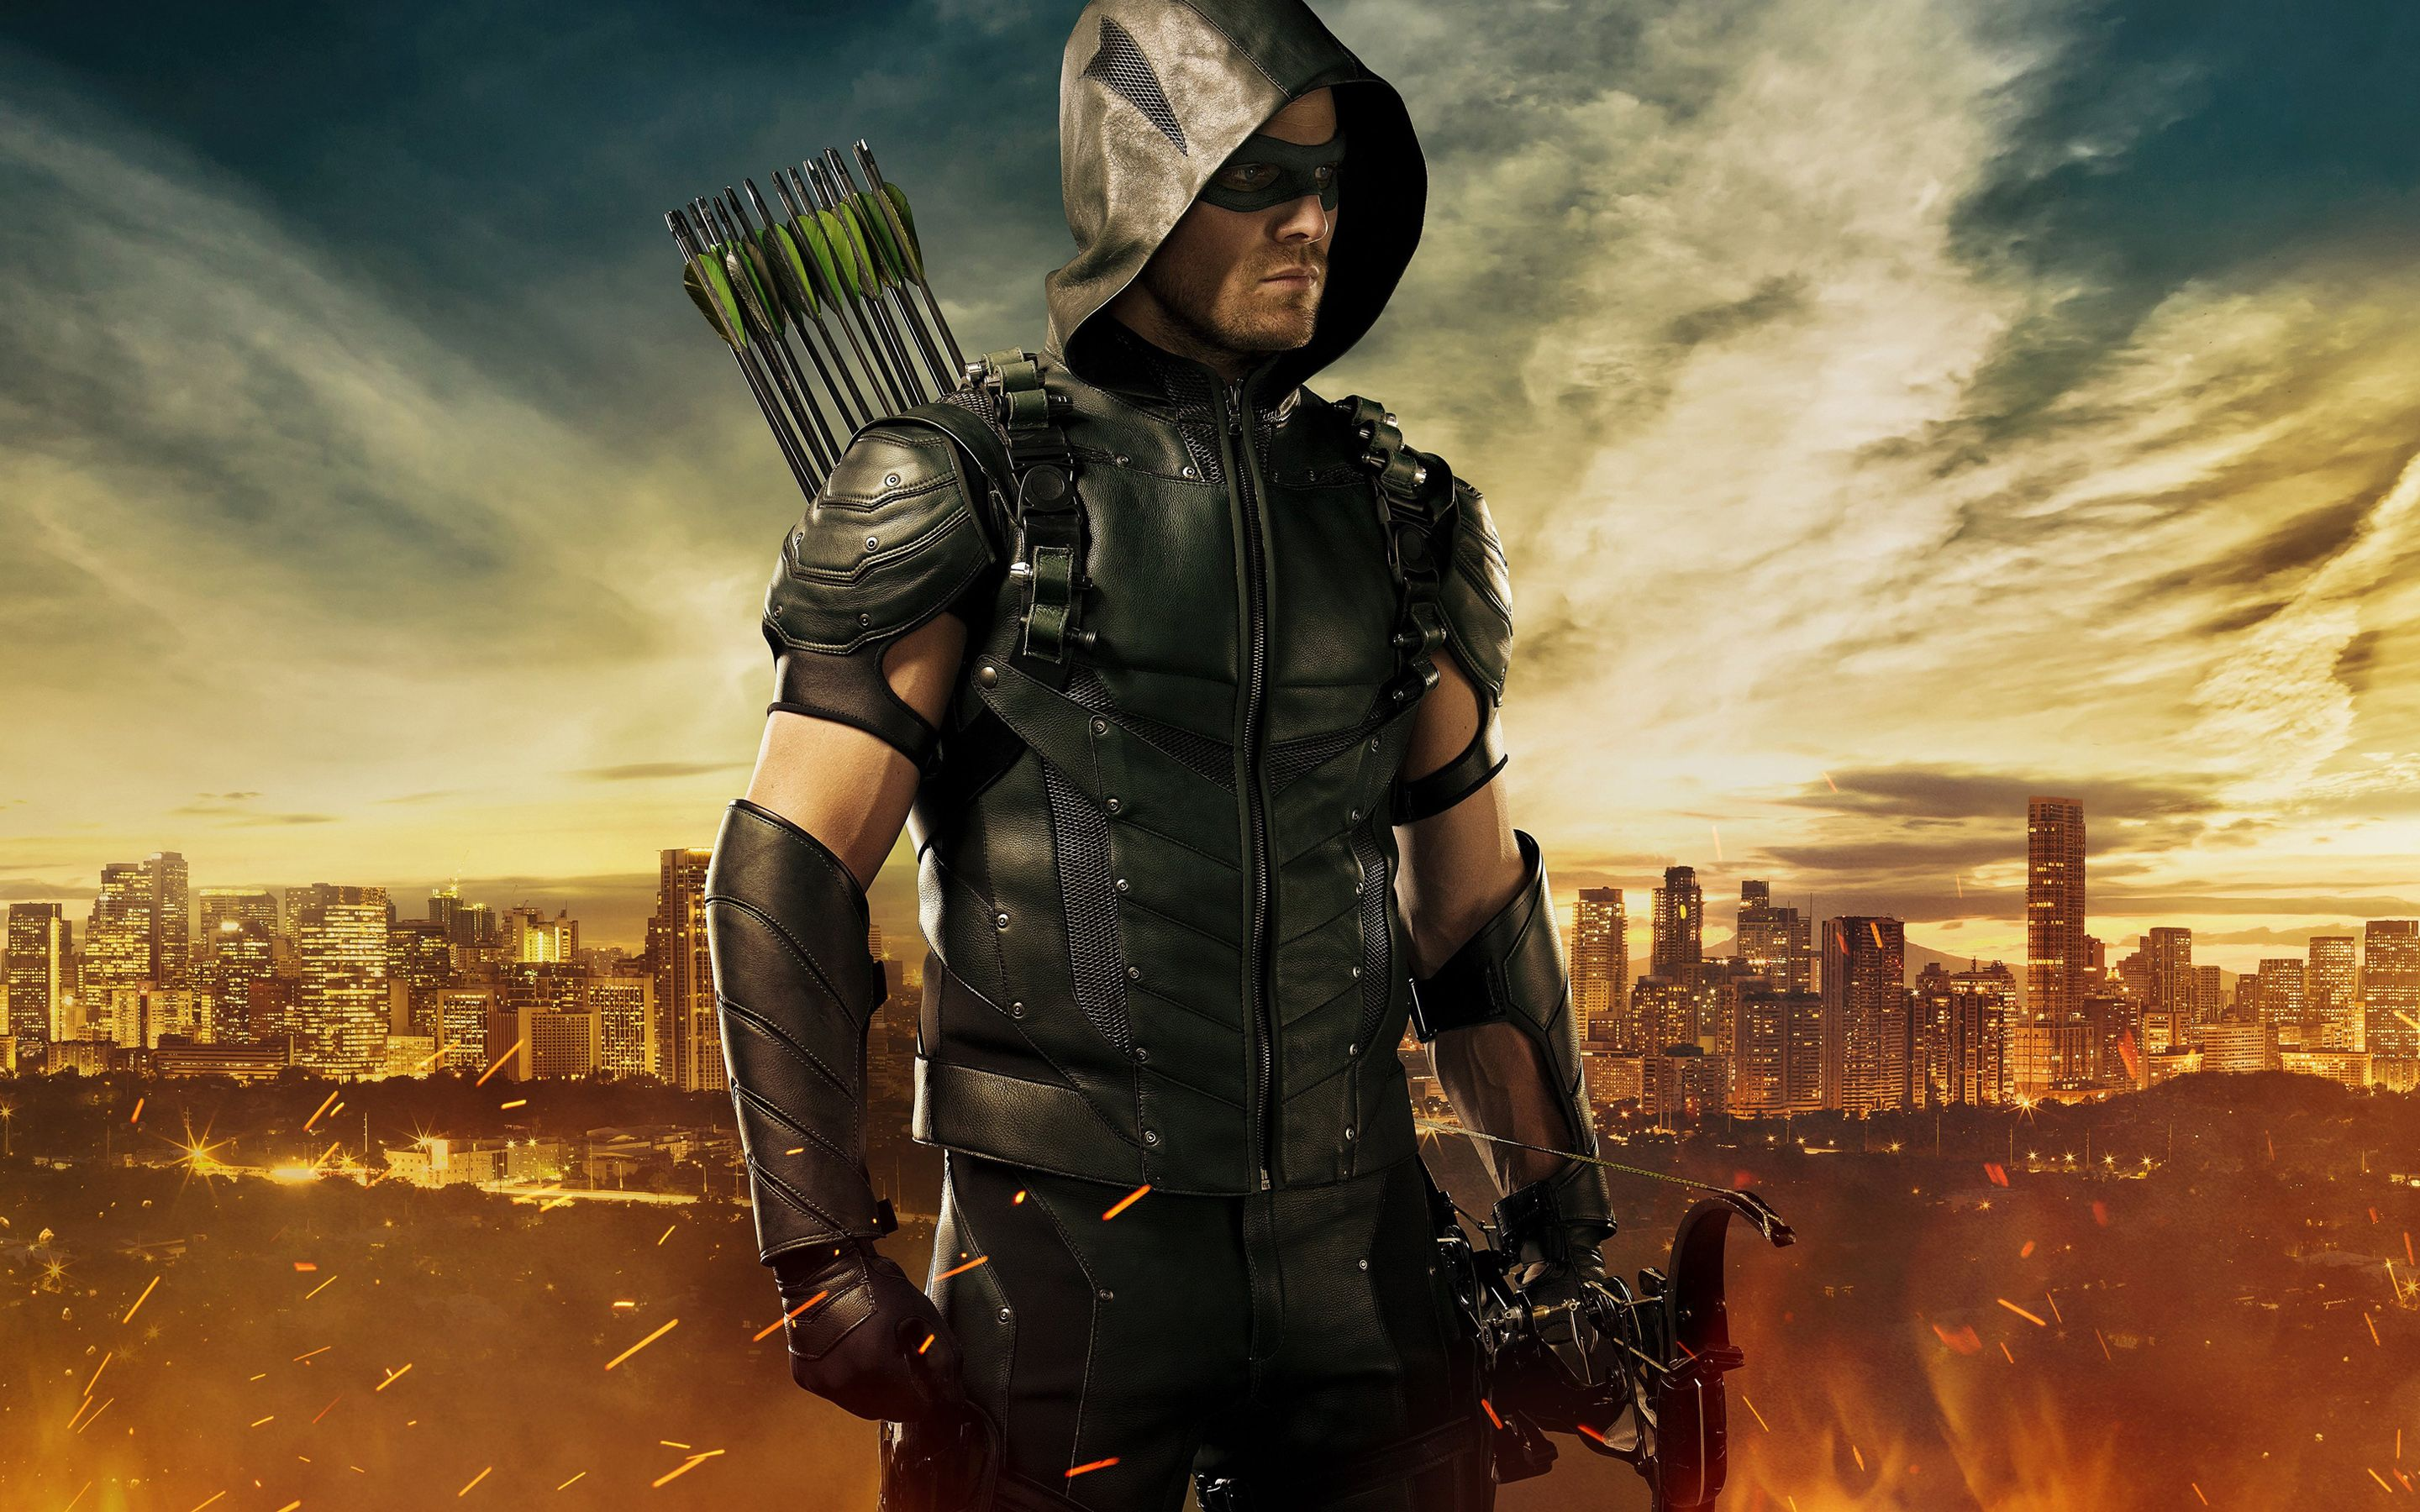 Cool Arrow Wallpapers - Top Free Cool Arrow Backgrounds